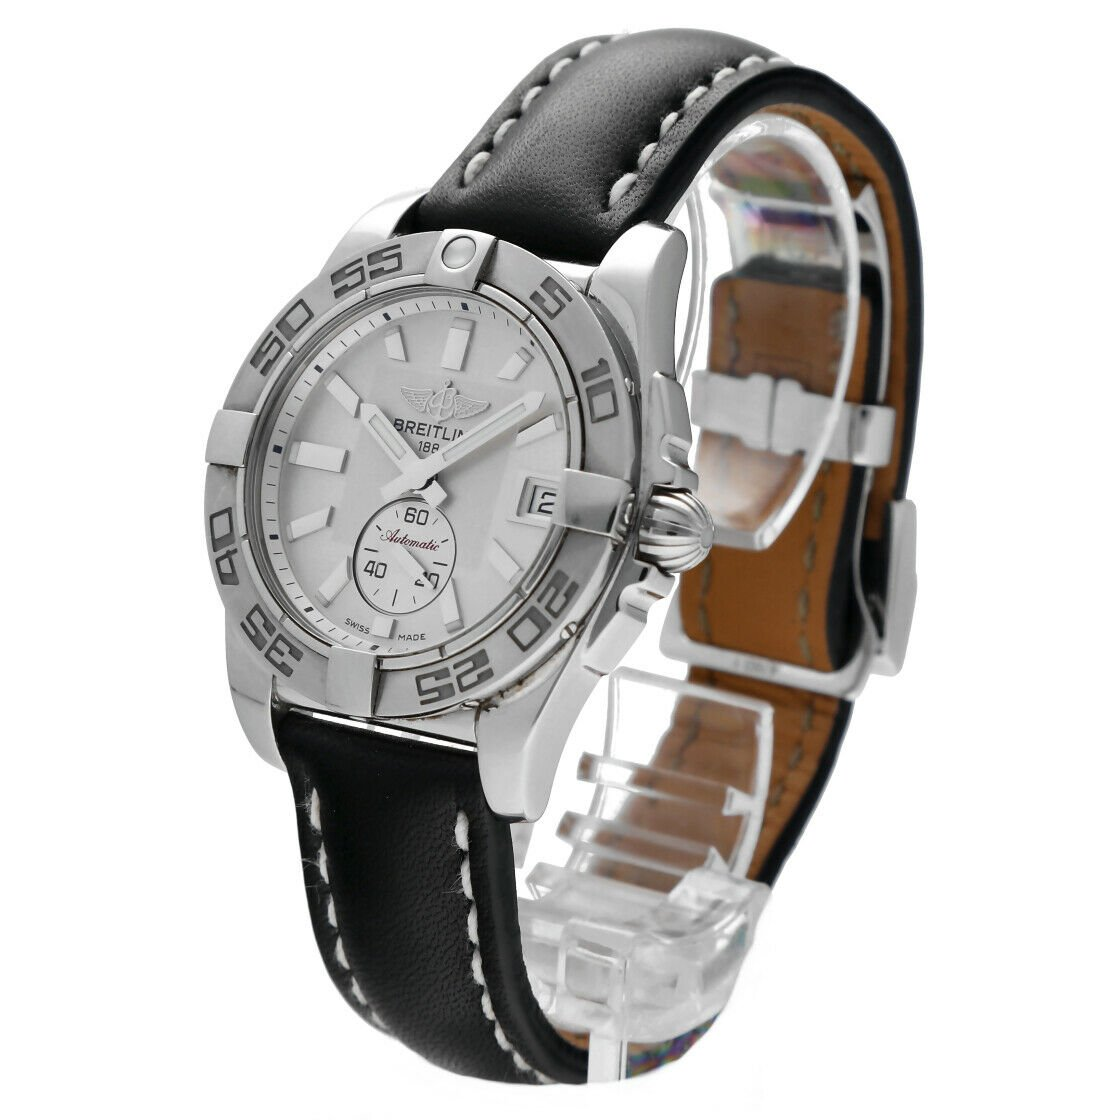 Breitling A37330 Galactic 36 Steel Silver Dial Leather Automatic Mens Watch 124367709895 2